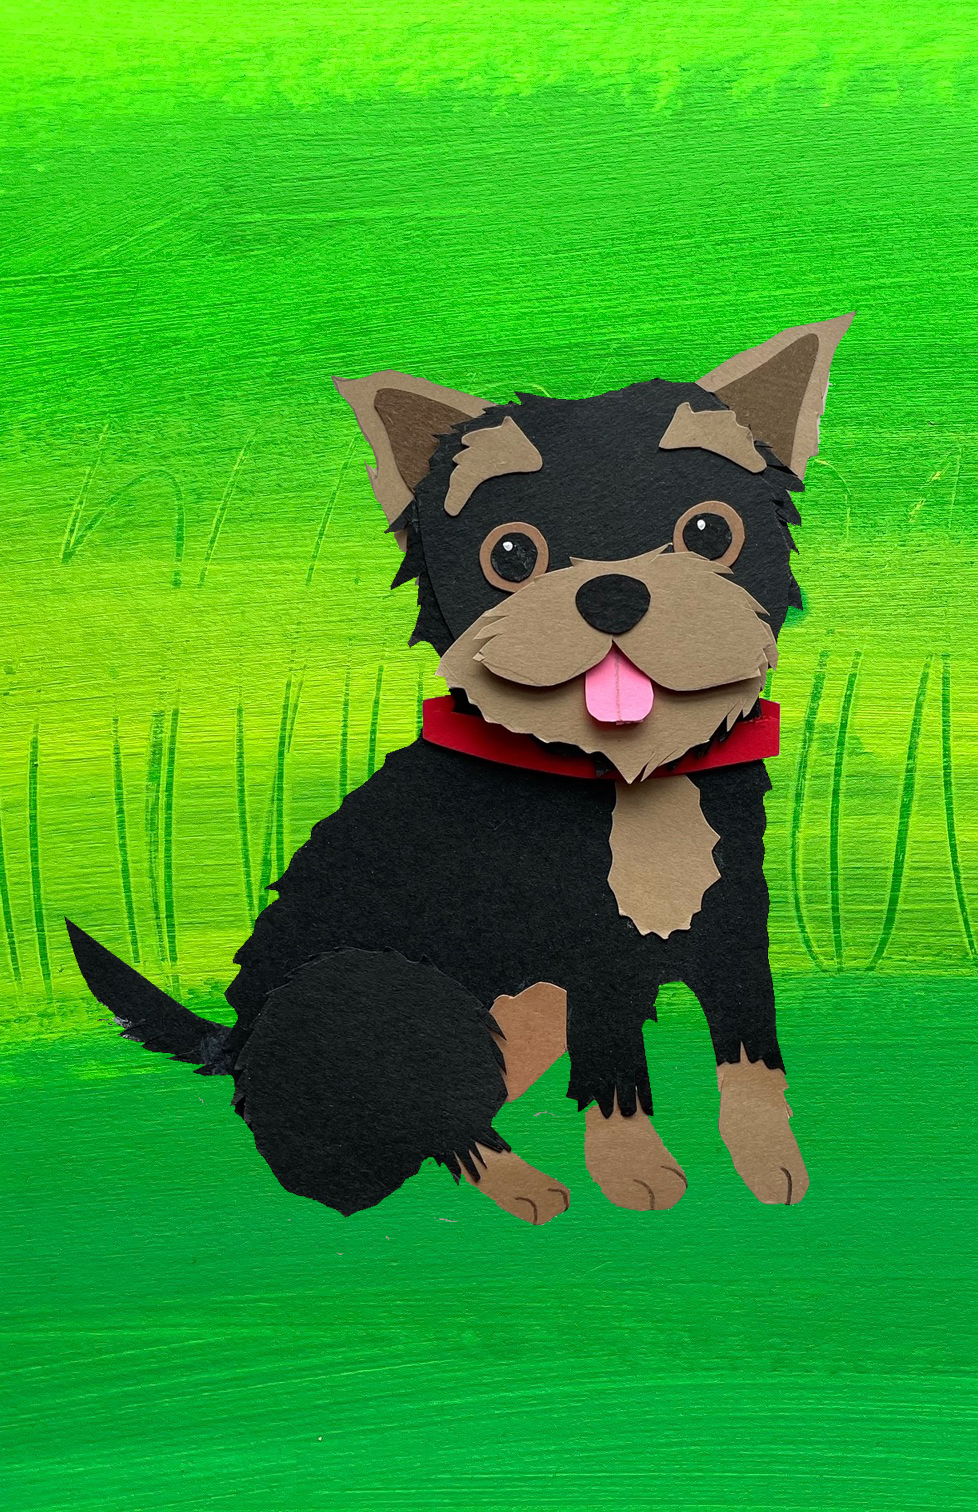 Dogs-1Yorkie with Grass Background © Shelley Davies